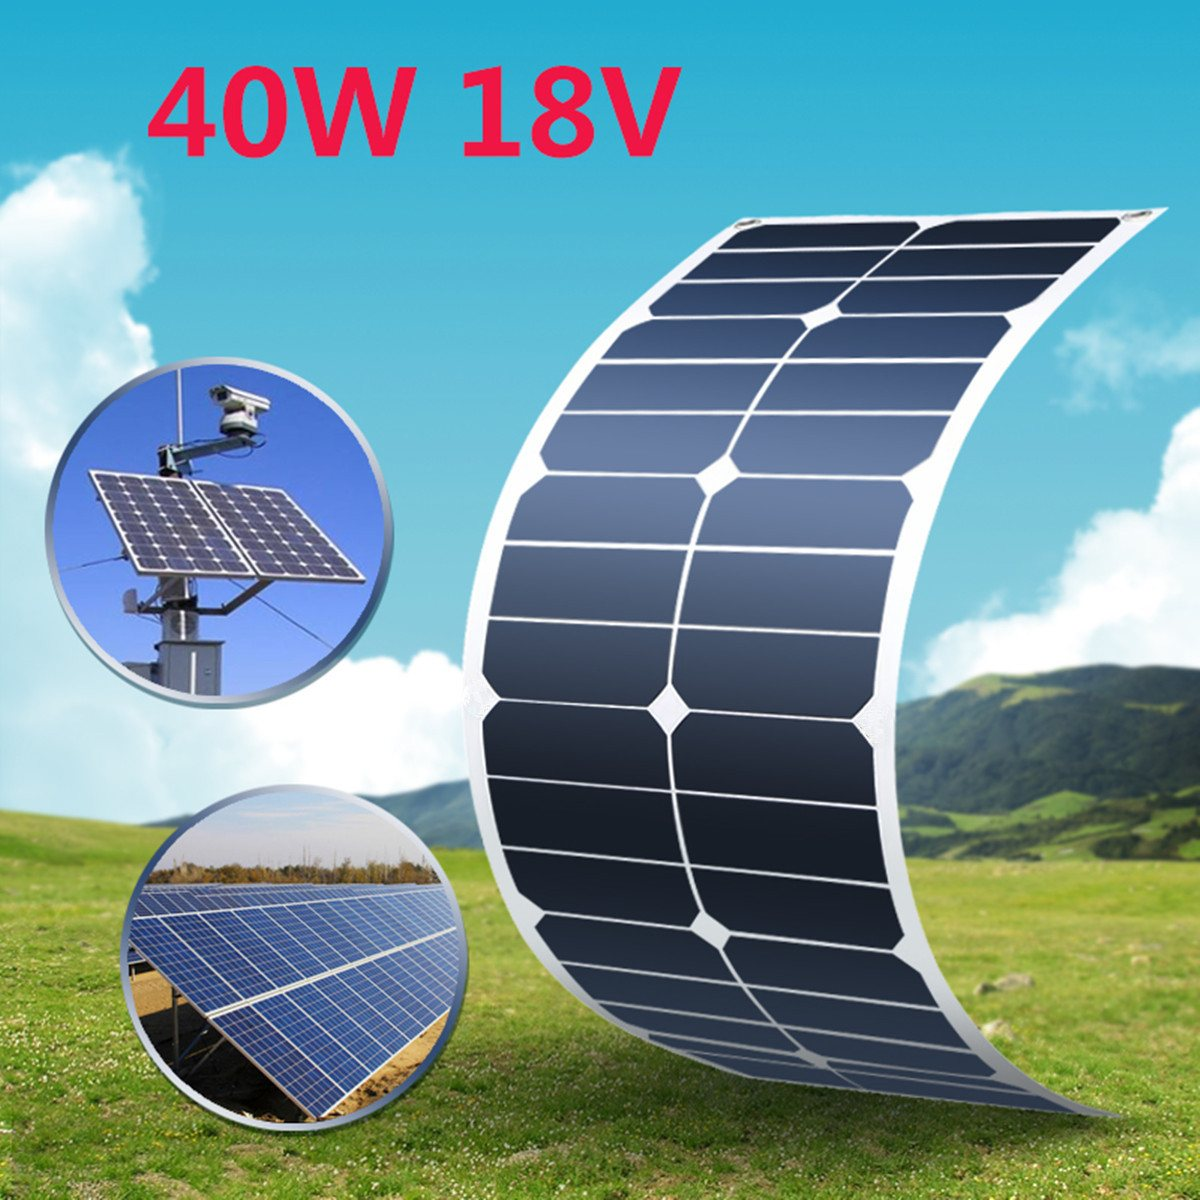 KINCO 40W/18V Semi-Flexible Solar Panel Monocrystalline Silicon Solar System Power Supply For Car Charger +MC4 Connector Cable sunpower flexible solar panel 12v 100w monocrystalline semi flexible solar panel 100w solar cell 21